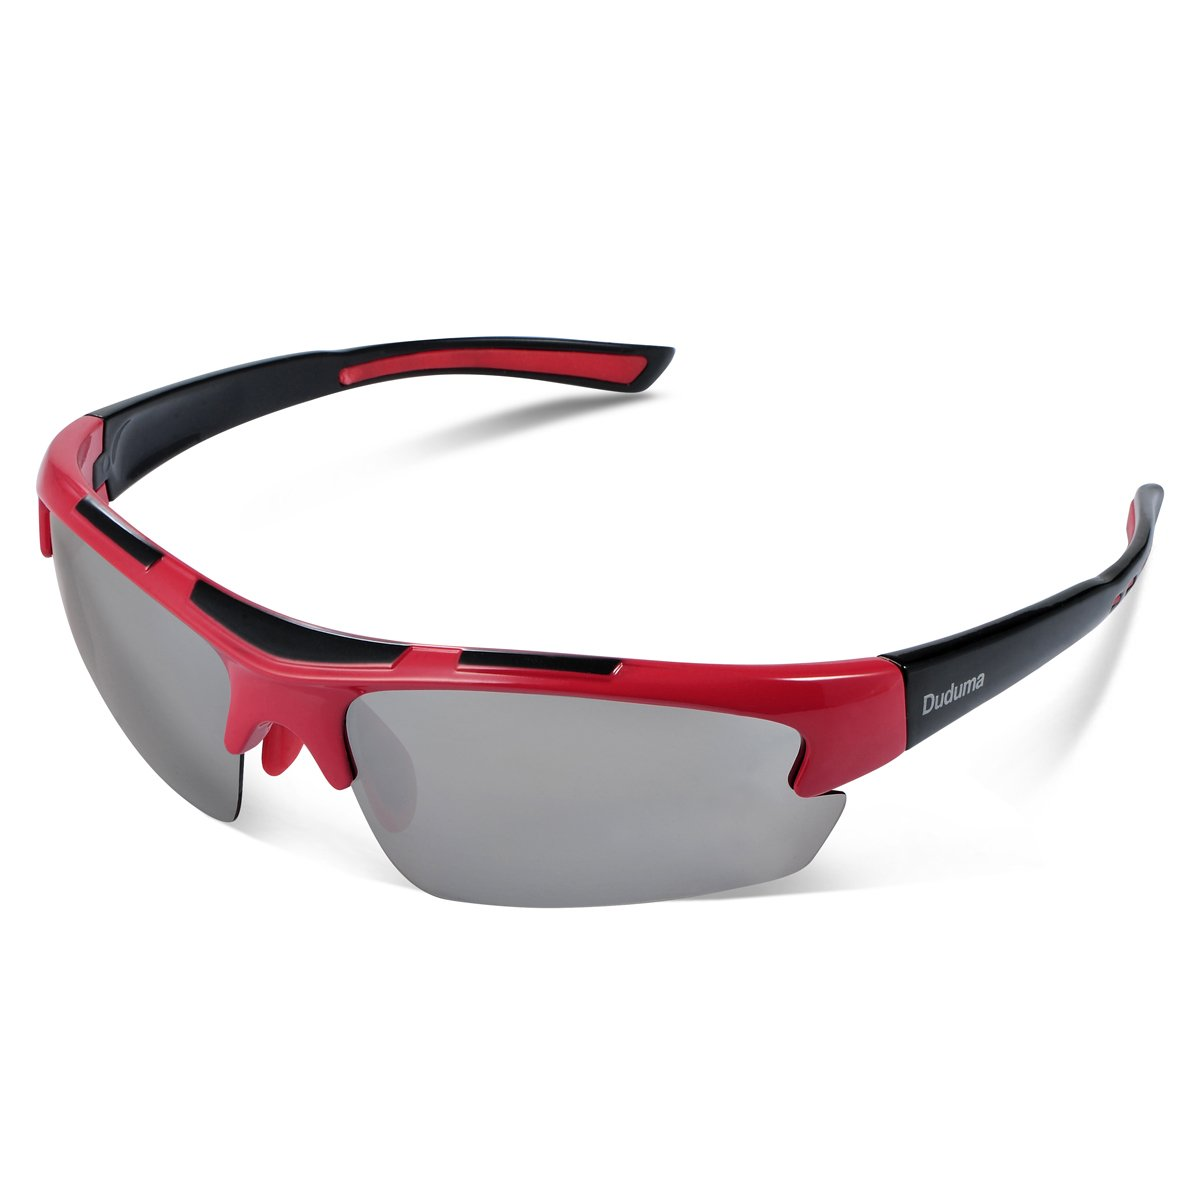 Duduma Polarized Designer Fashion Sports Sunglasses for Baseball Cycling Fishing Golf Tr62 Superlight Frame (red/black)